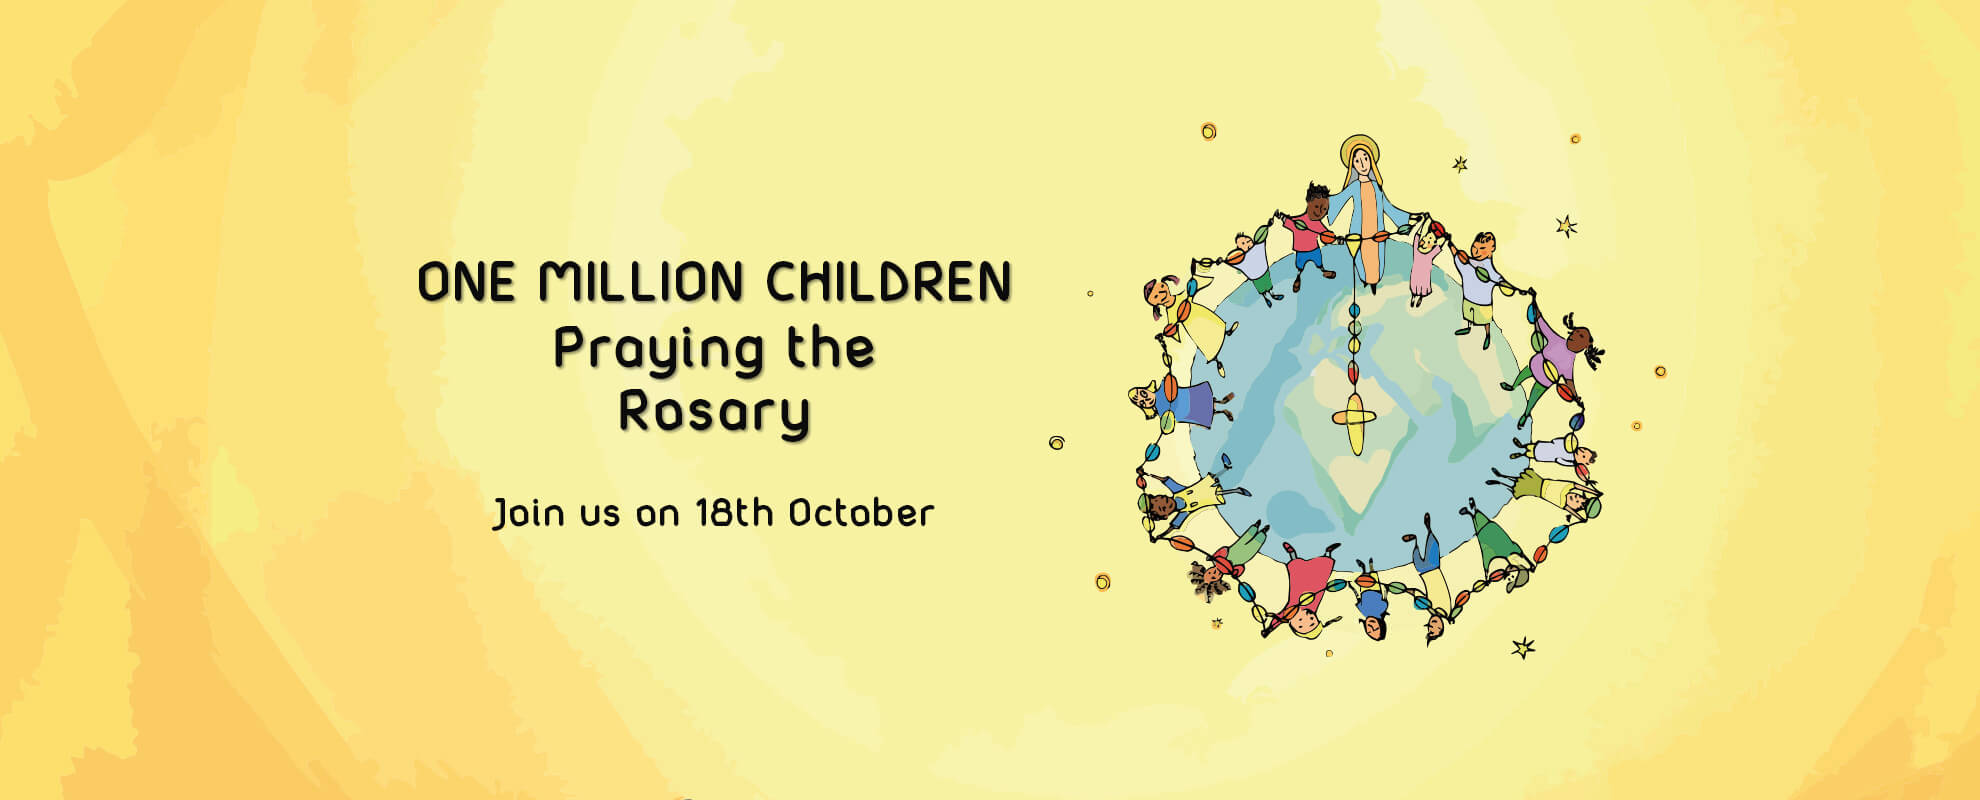 One Million Kids praying the Rosary